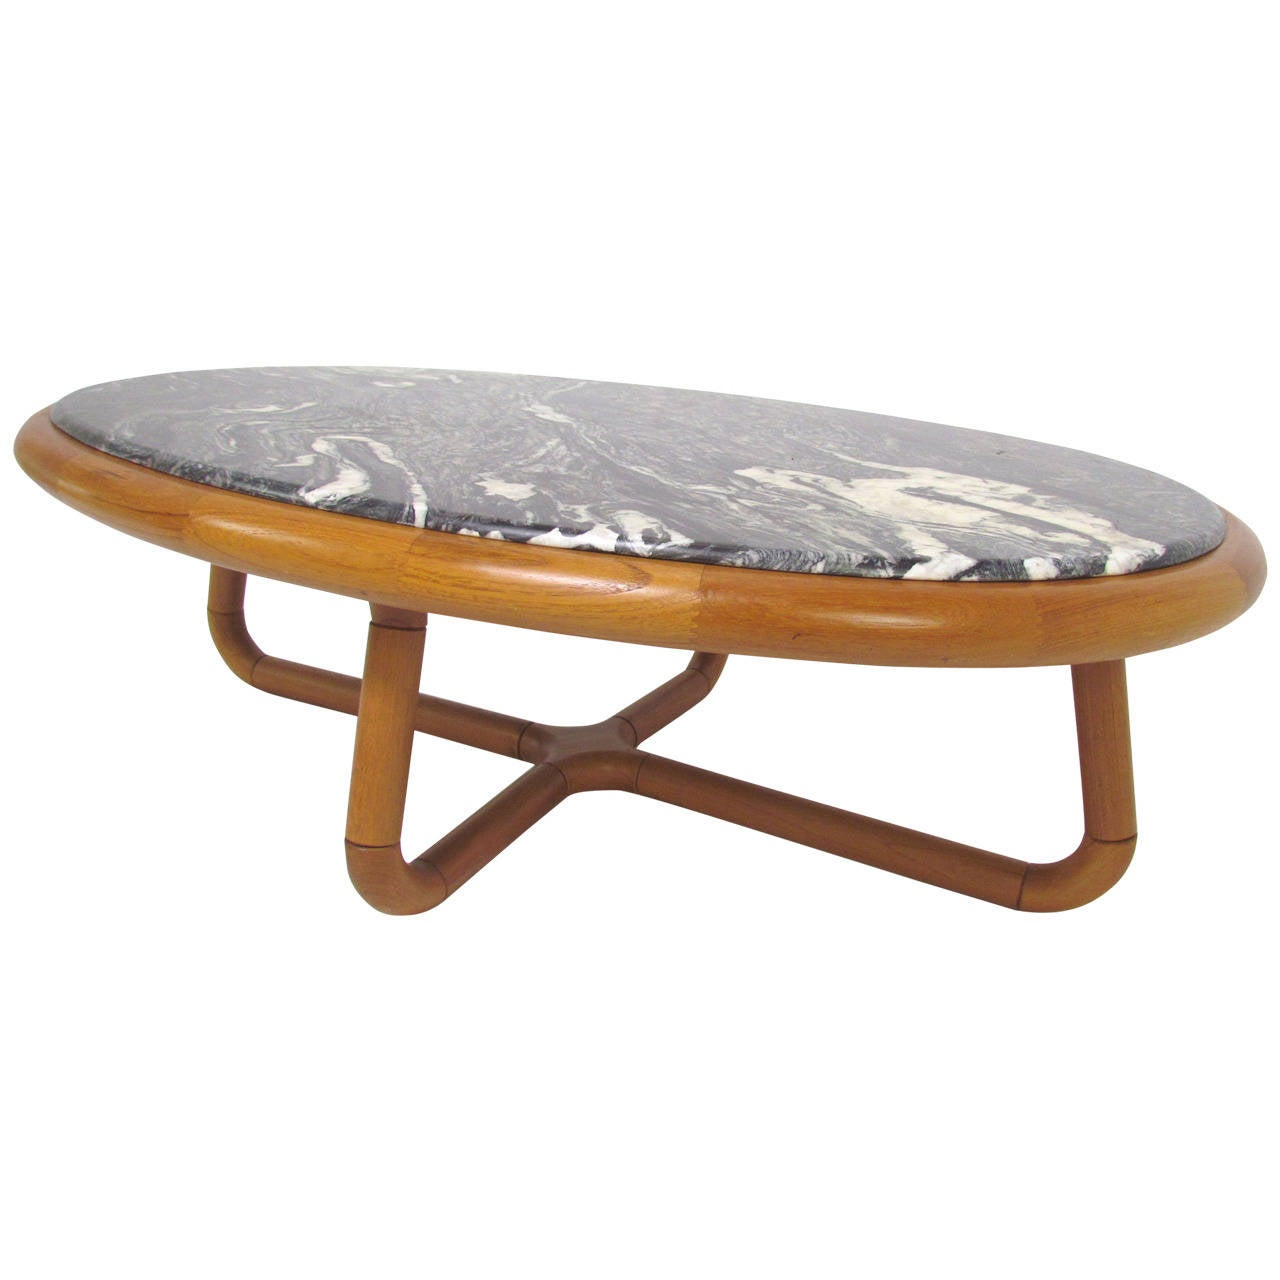 Sculptural Danish Teak Coffee Table With Zebra Marble Top At 1stdibs